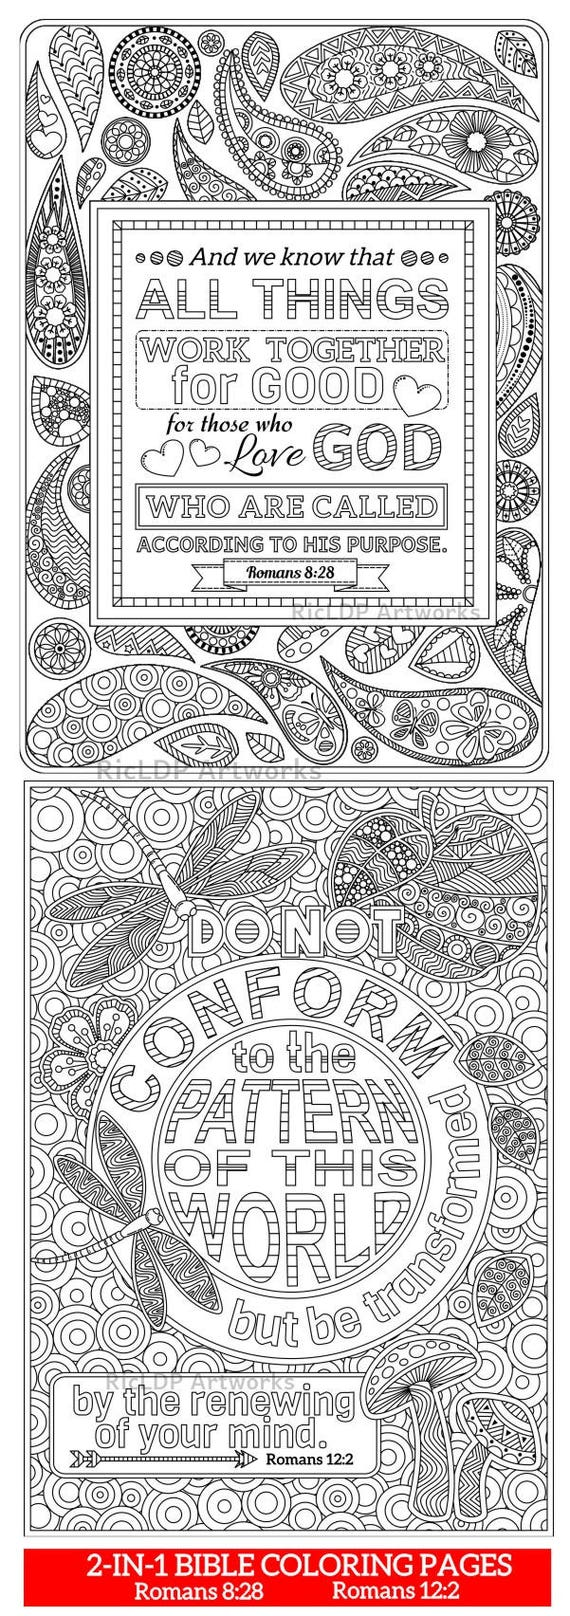 93 2 Printable Bible Coloring Pages Romans 8 28 And 12